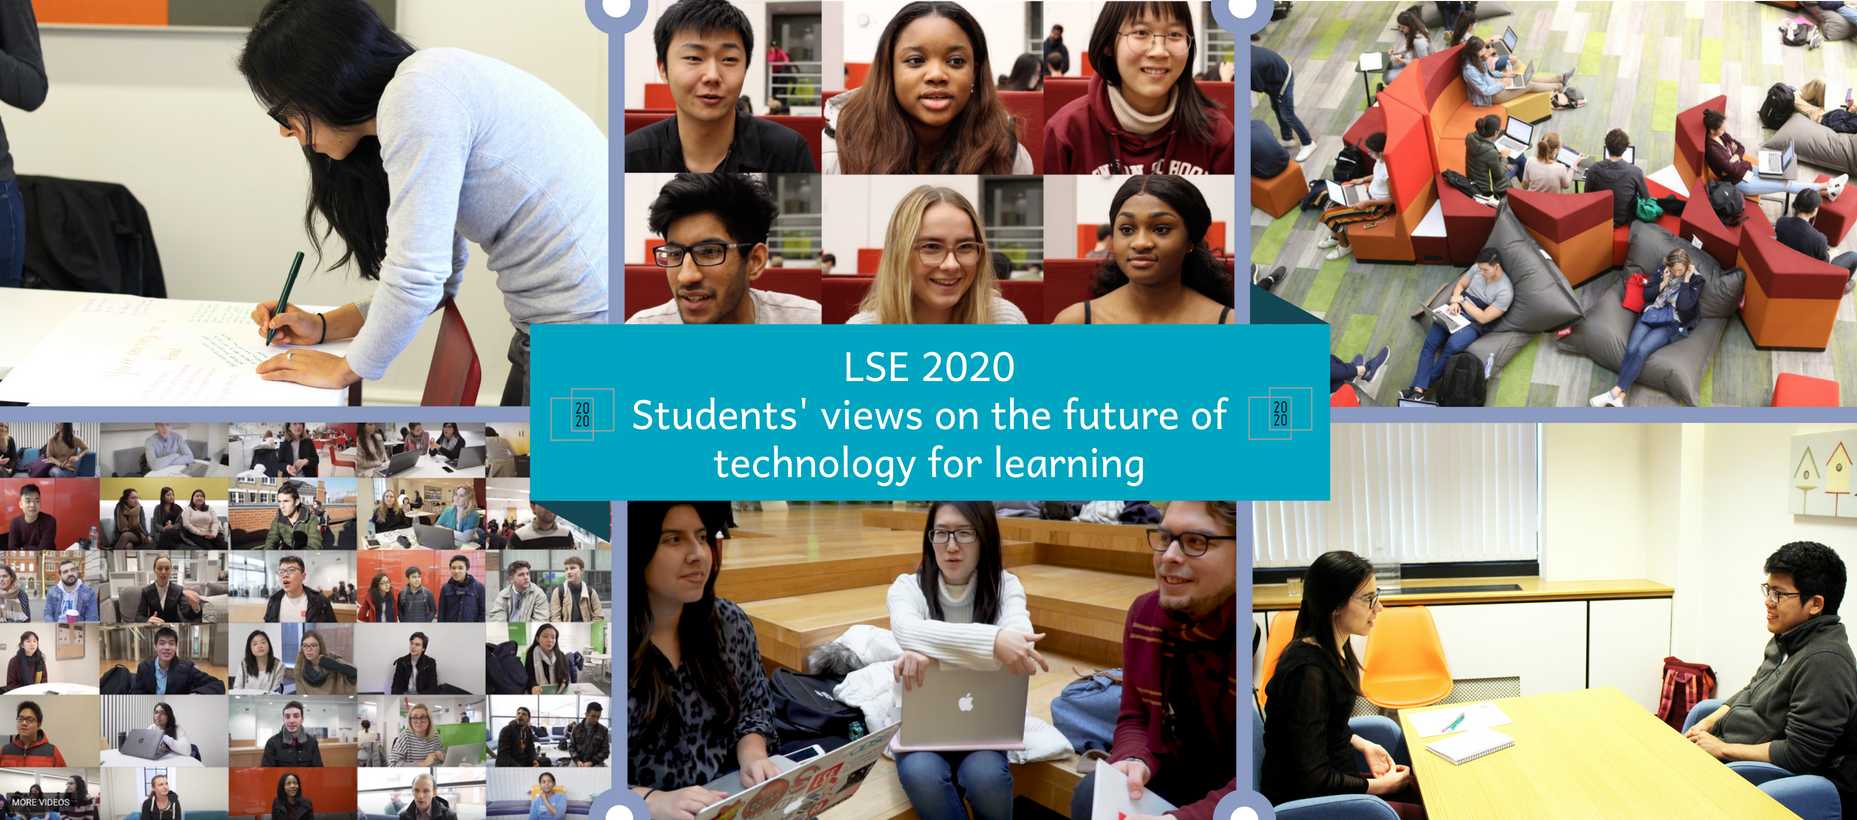 LSE 2020 Students' views on the future of technology for learning